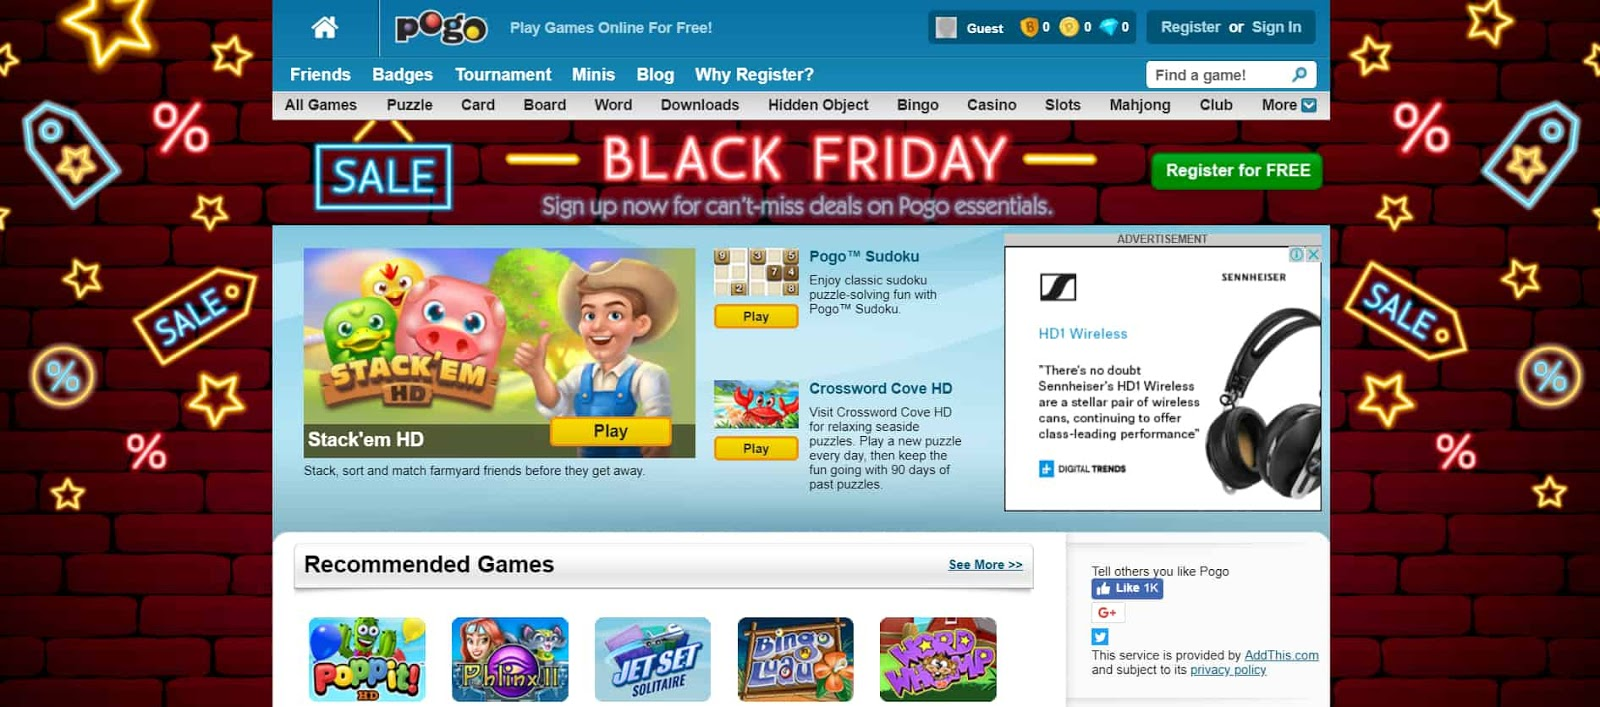 Top 10 Webgames Site To Play Free Online Games - Eazzyone-5230